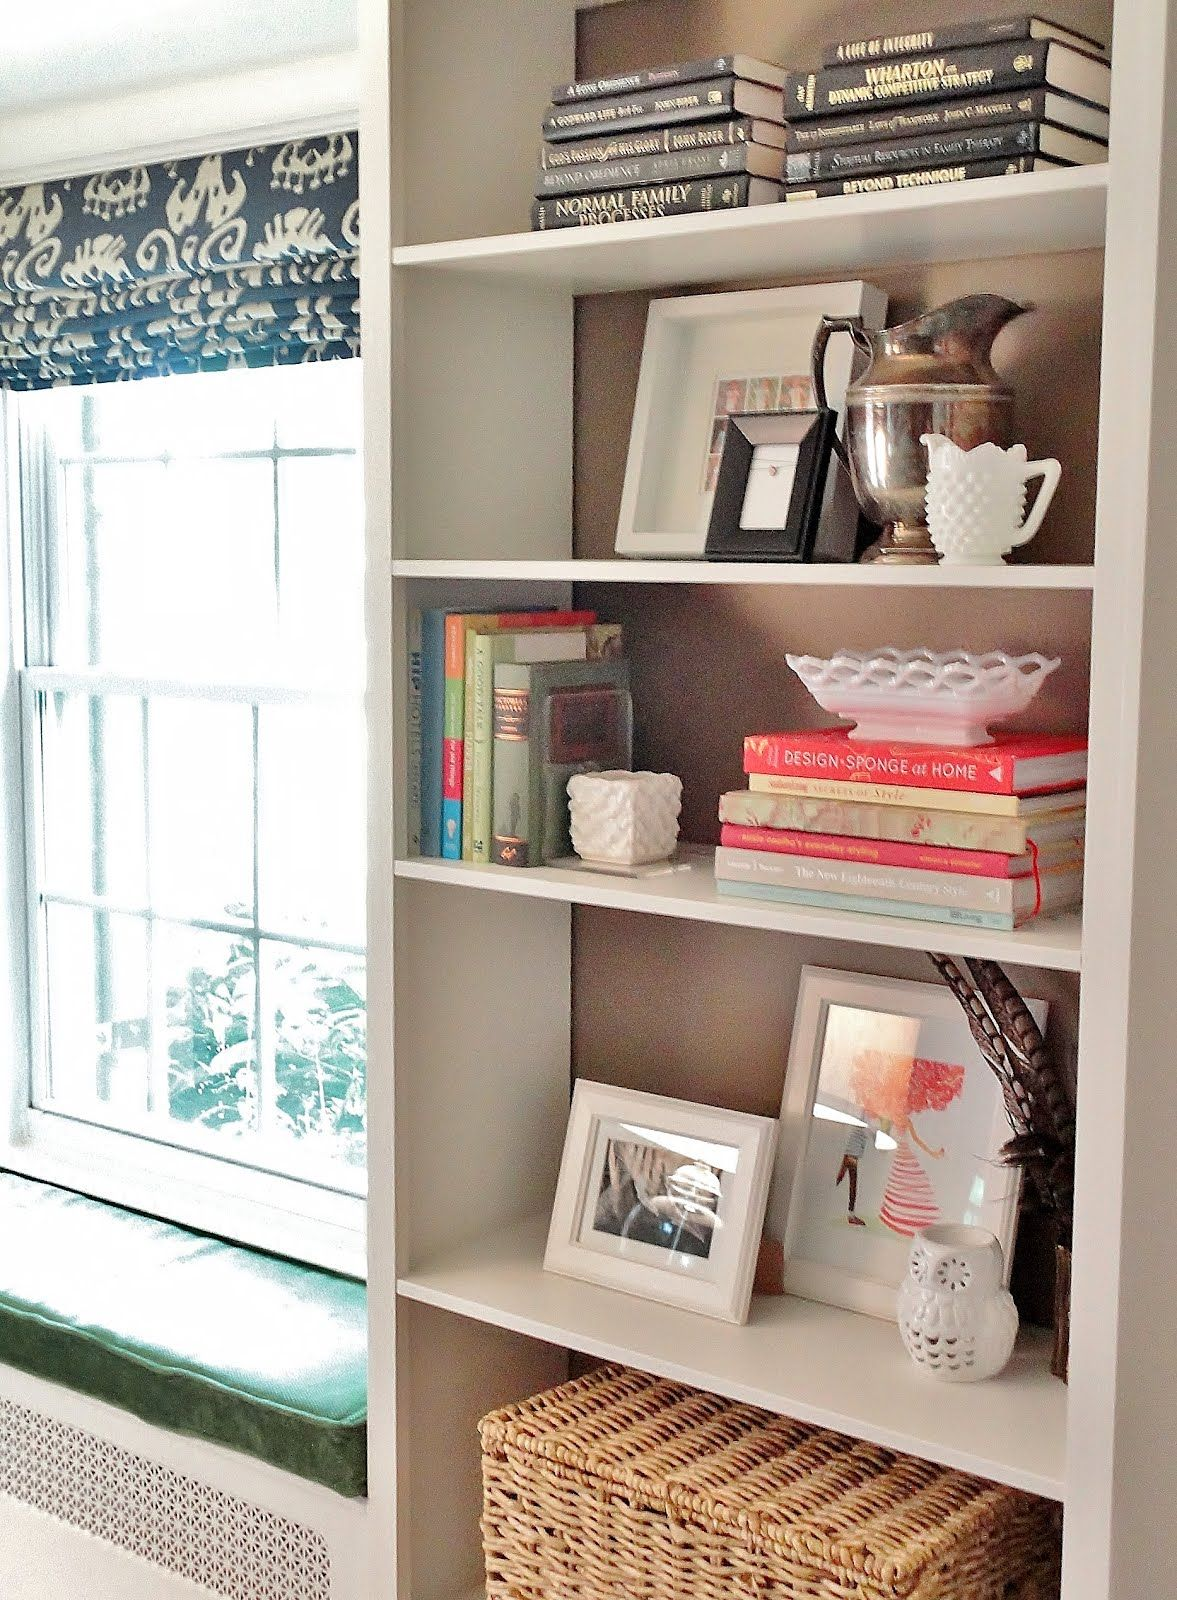 Window Seat Bookshelf Billy Built In With Windowseat Favorite Places Spaces Ikea